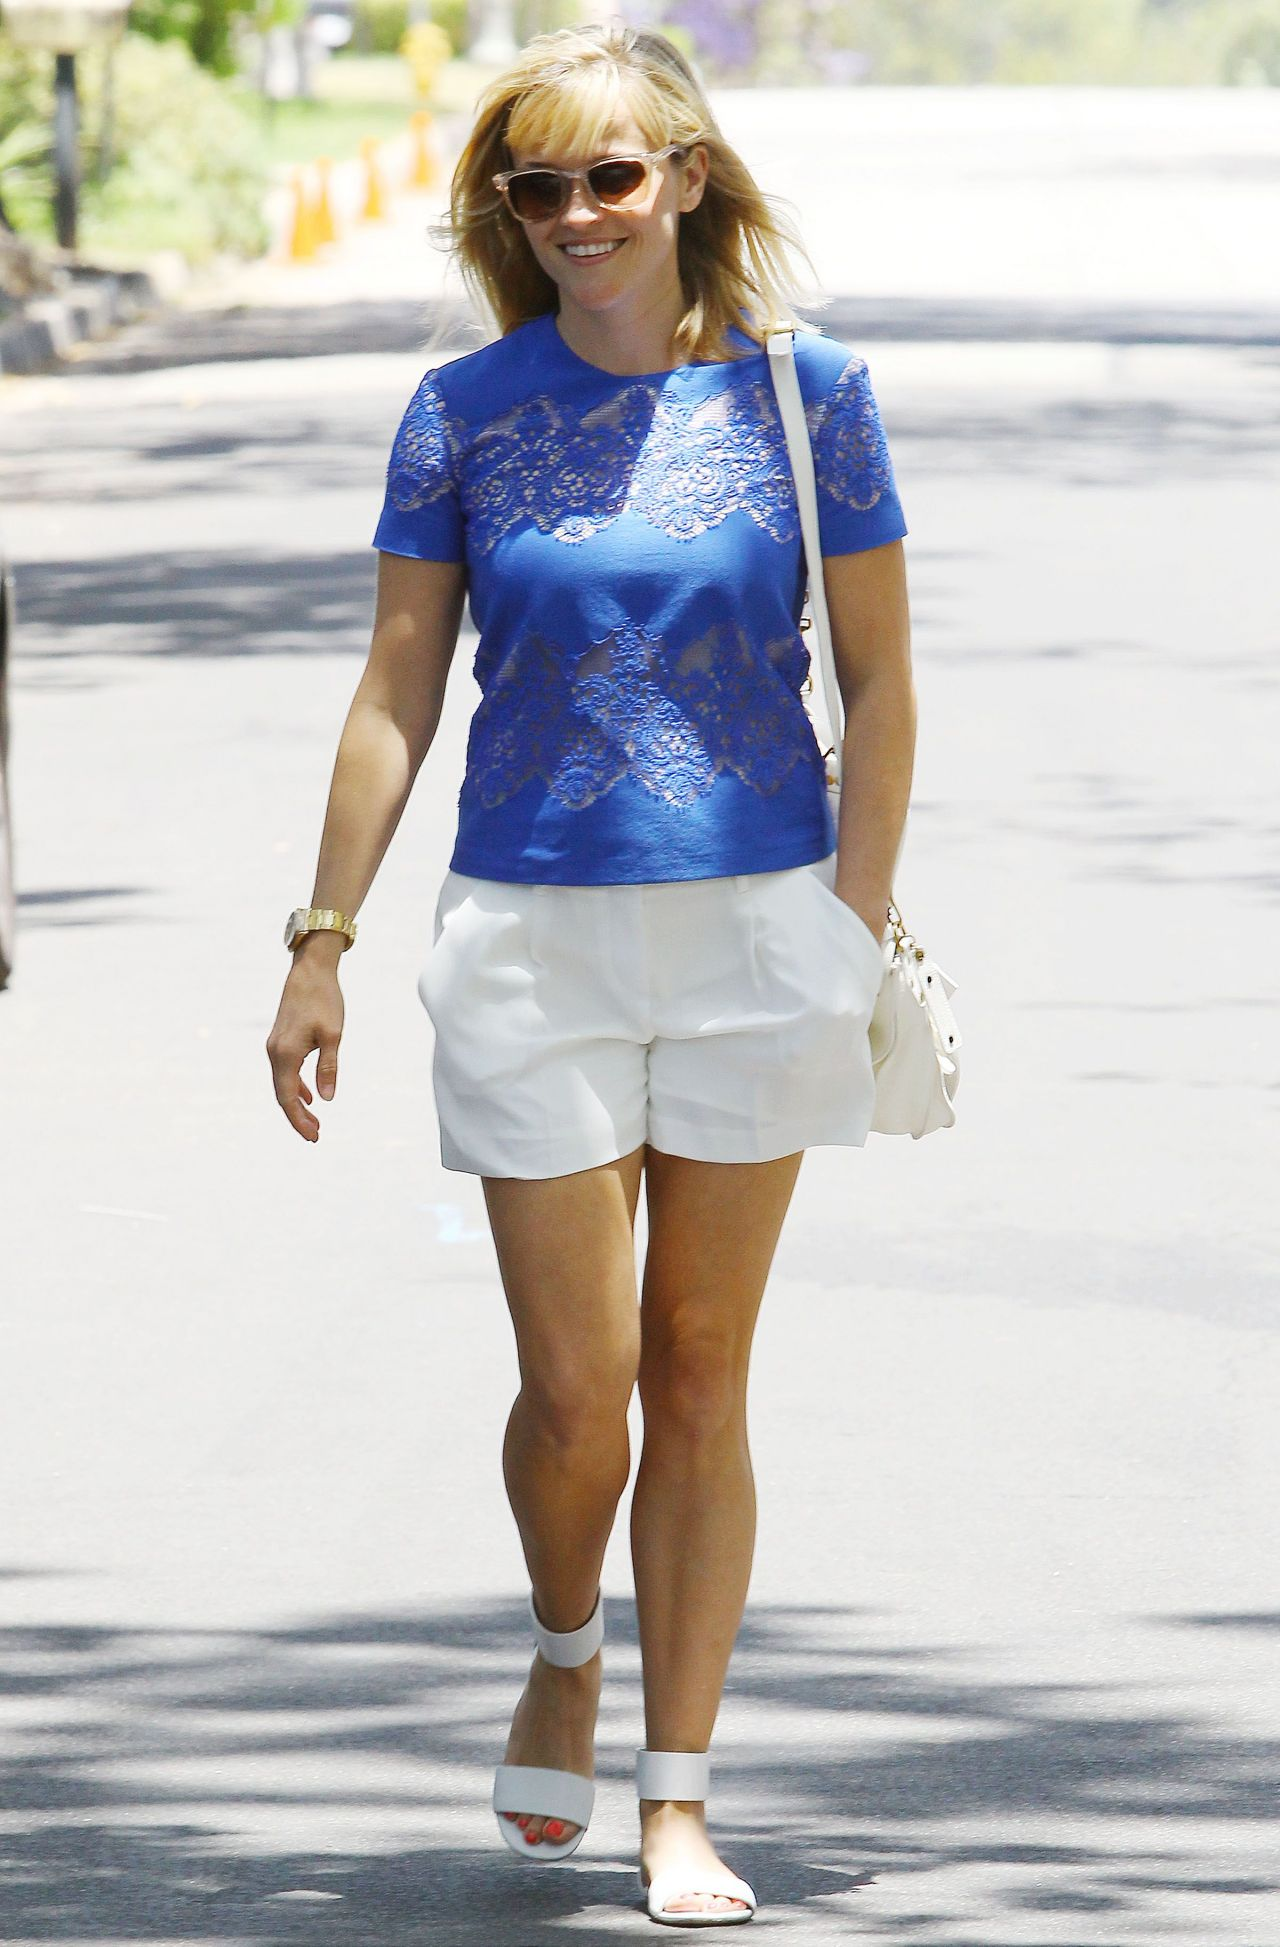 Reese Witherspoon in Shorts - Out in Los Angeles - June 2014